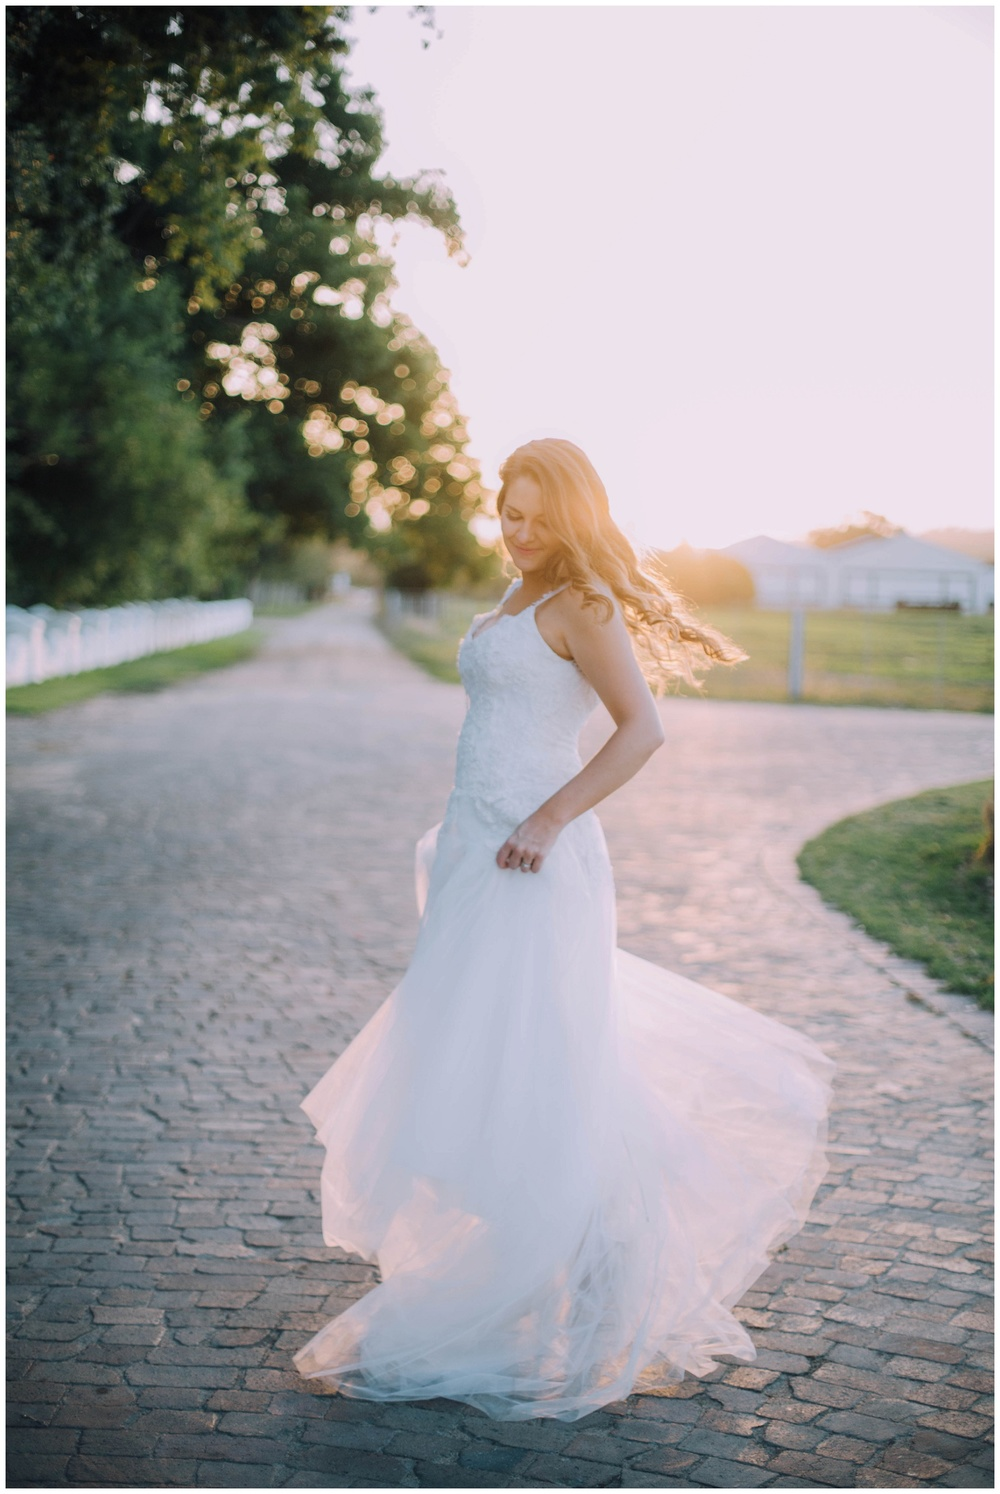 Ronel Kruger Cape Town Wedding and Lifestyle Photographer_8853.jpg